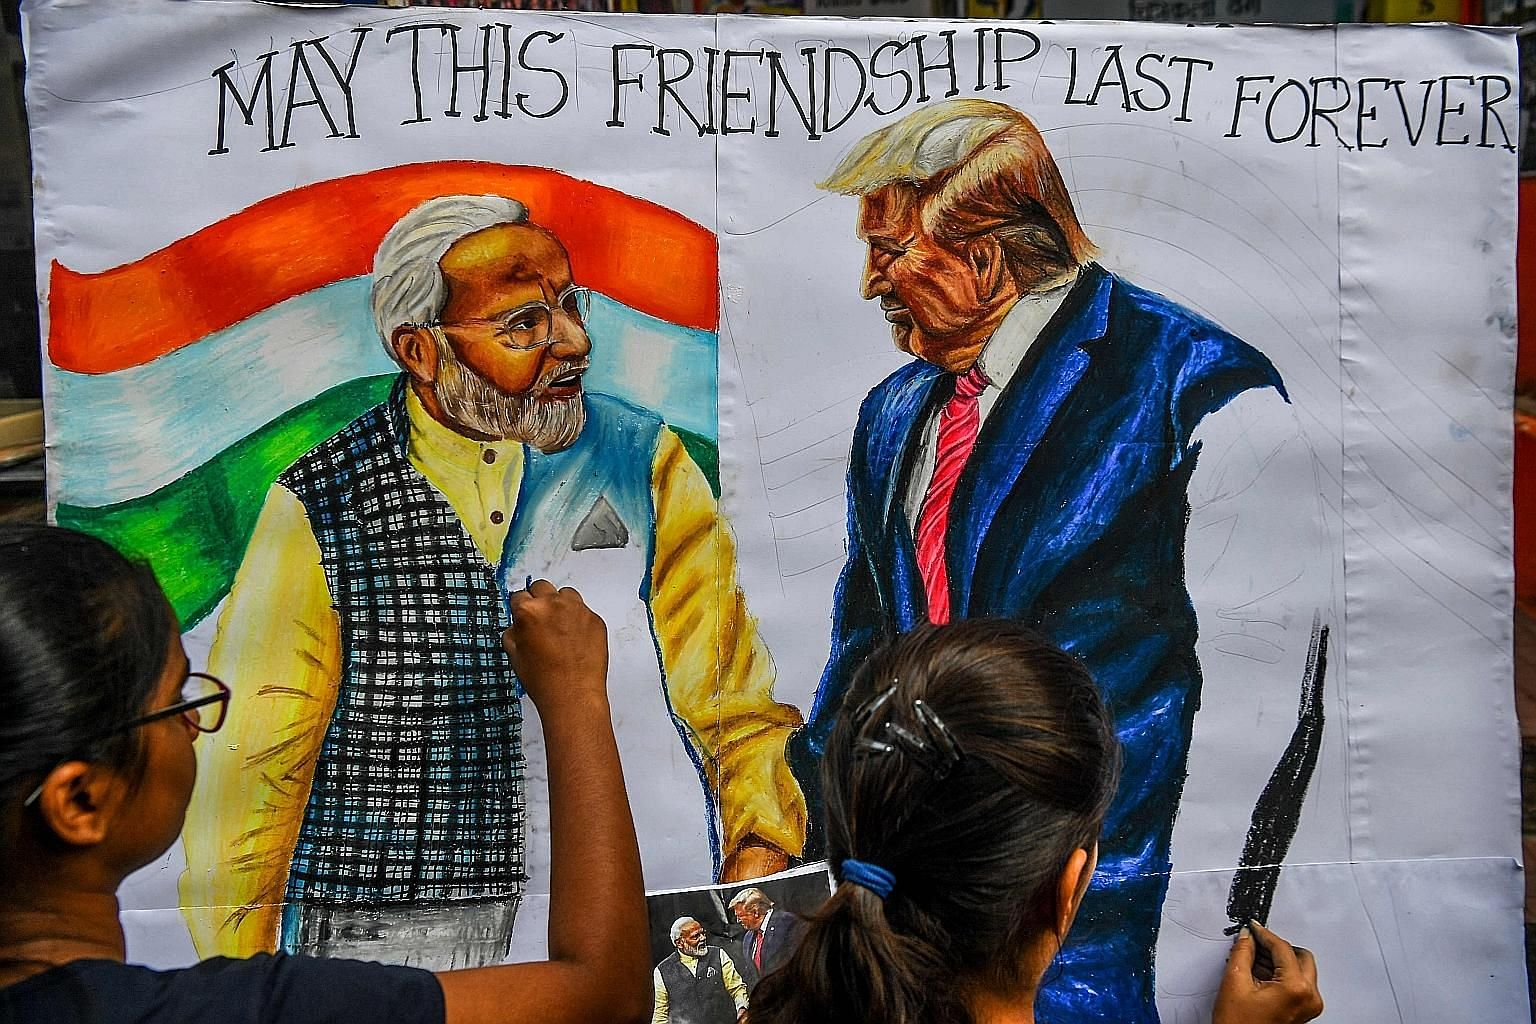 Mumbai students painting a portrait of Indian Prime Minister Narendra Modi and United States President Donald Trump on Friday. While both are undisputed leaders in their parties, they are concerned about their upcoming electoral prospects, says one w